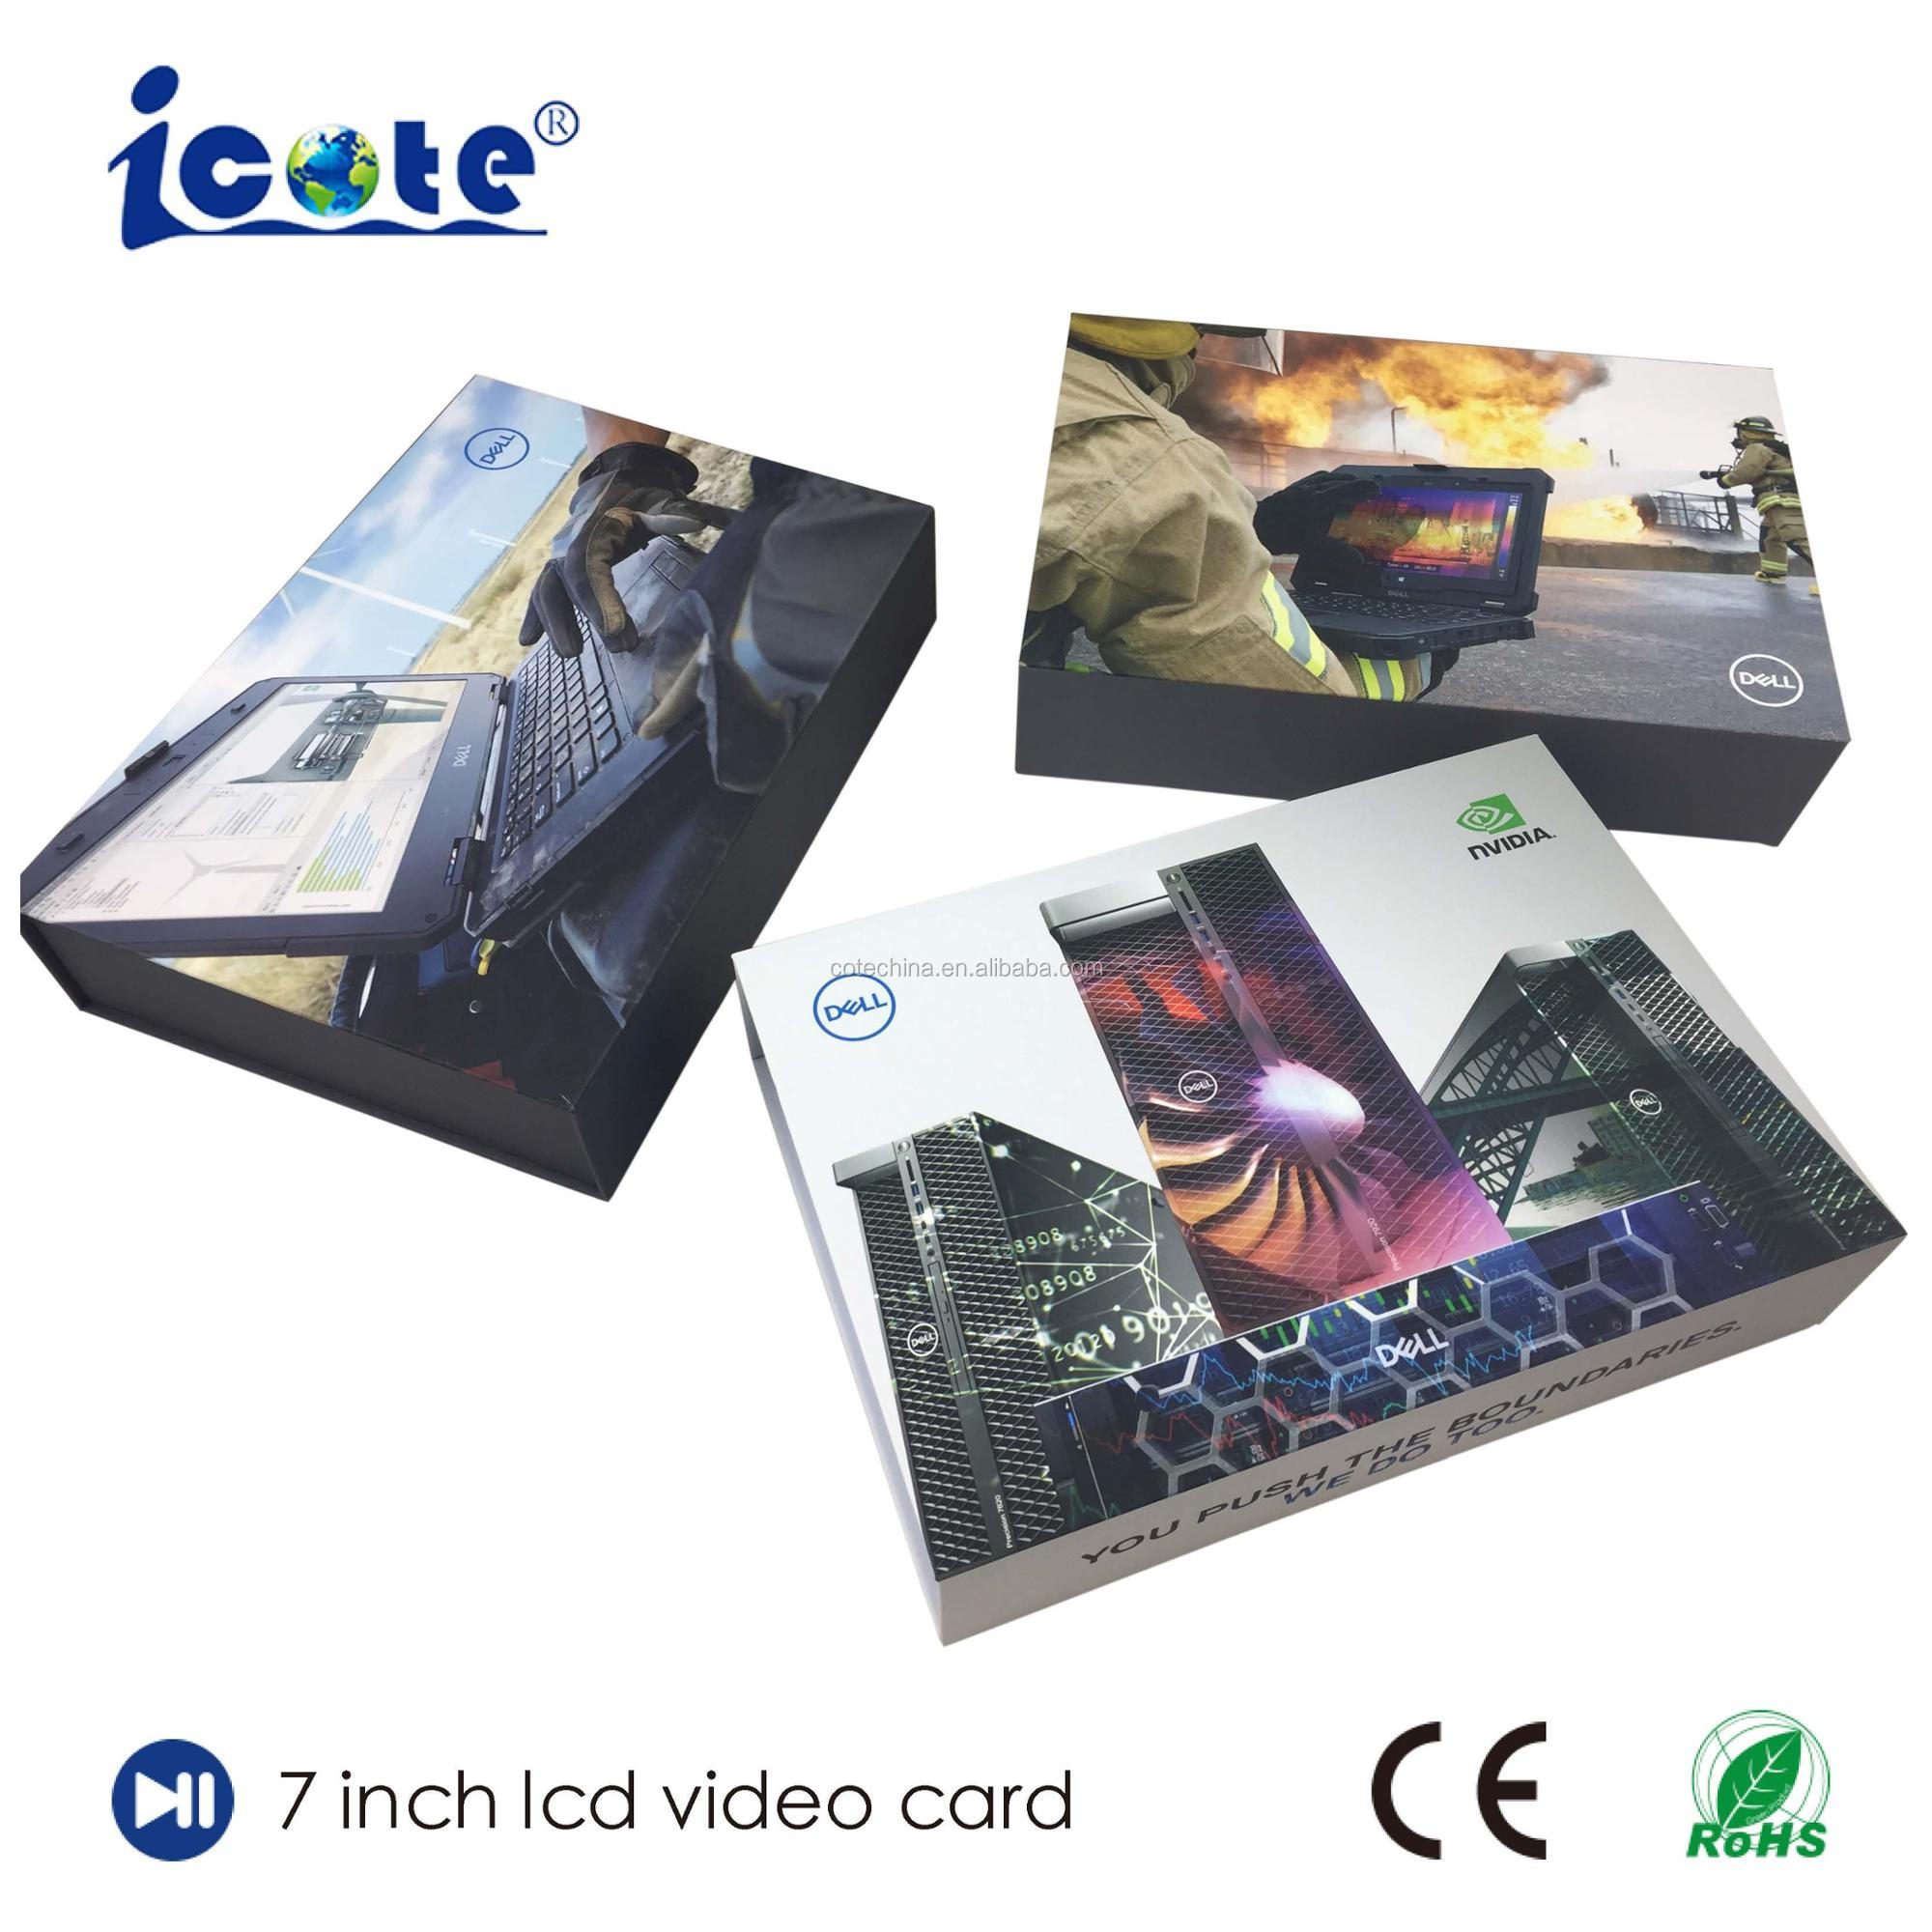 COTE Wholesales Gift Item Full Color Kraft Paper Bag Video Brochure In Bangalore For Shop